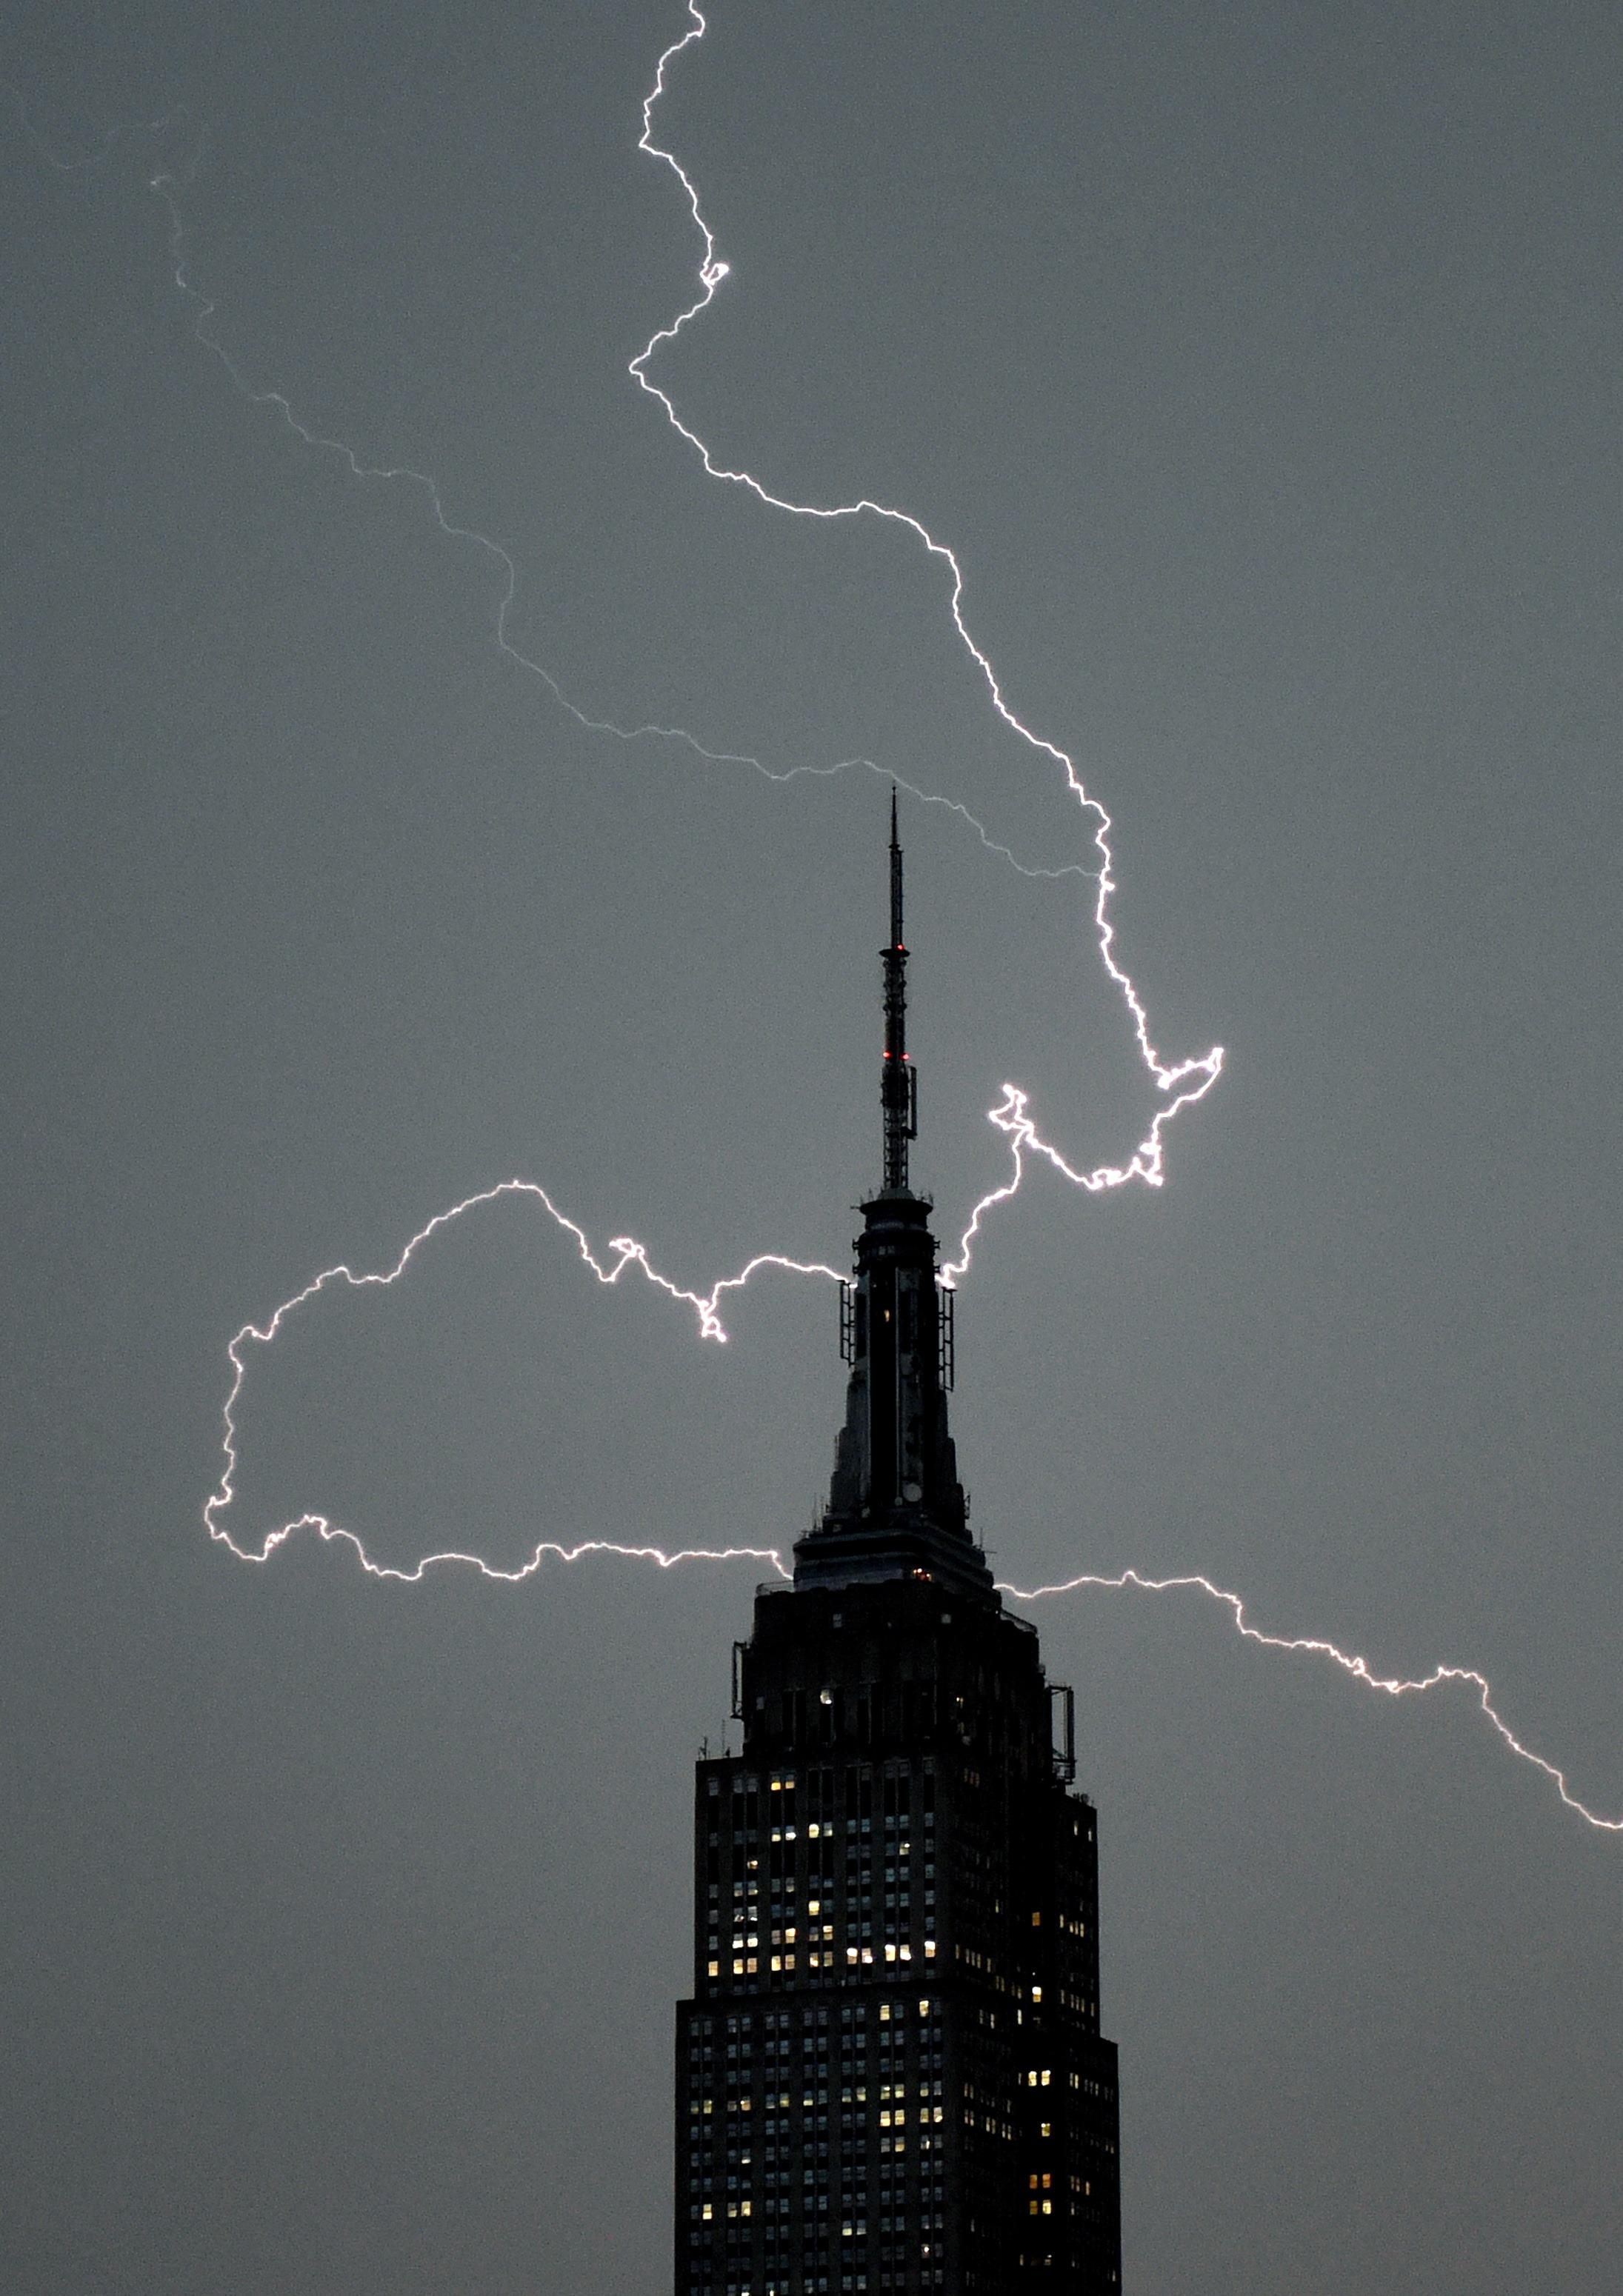 Lighting strikes over the Empire State Building as a major storm moves through New York City on July 2, 2014 (AFP Photo/Timothy A. Clary)